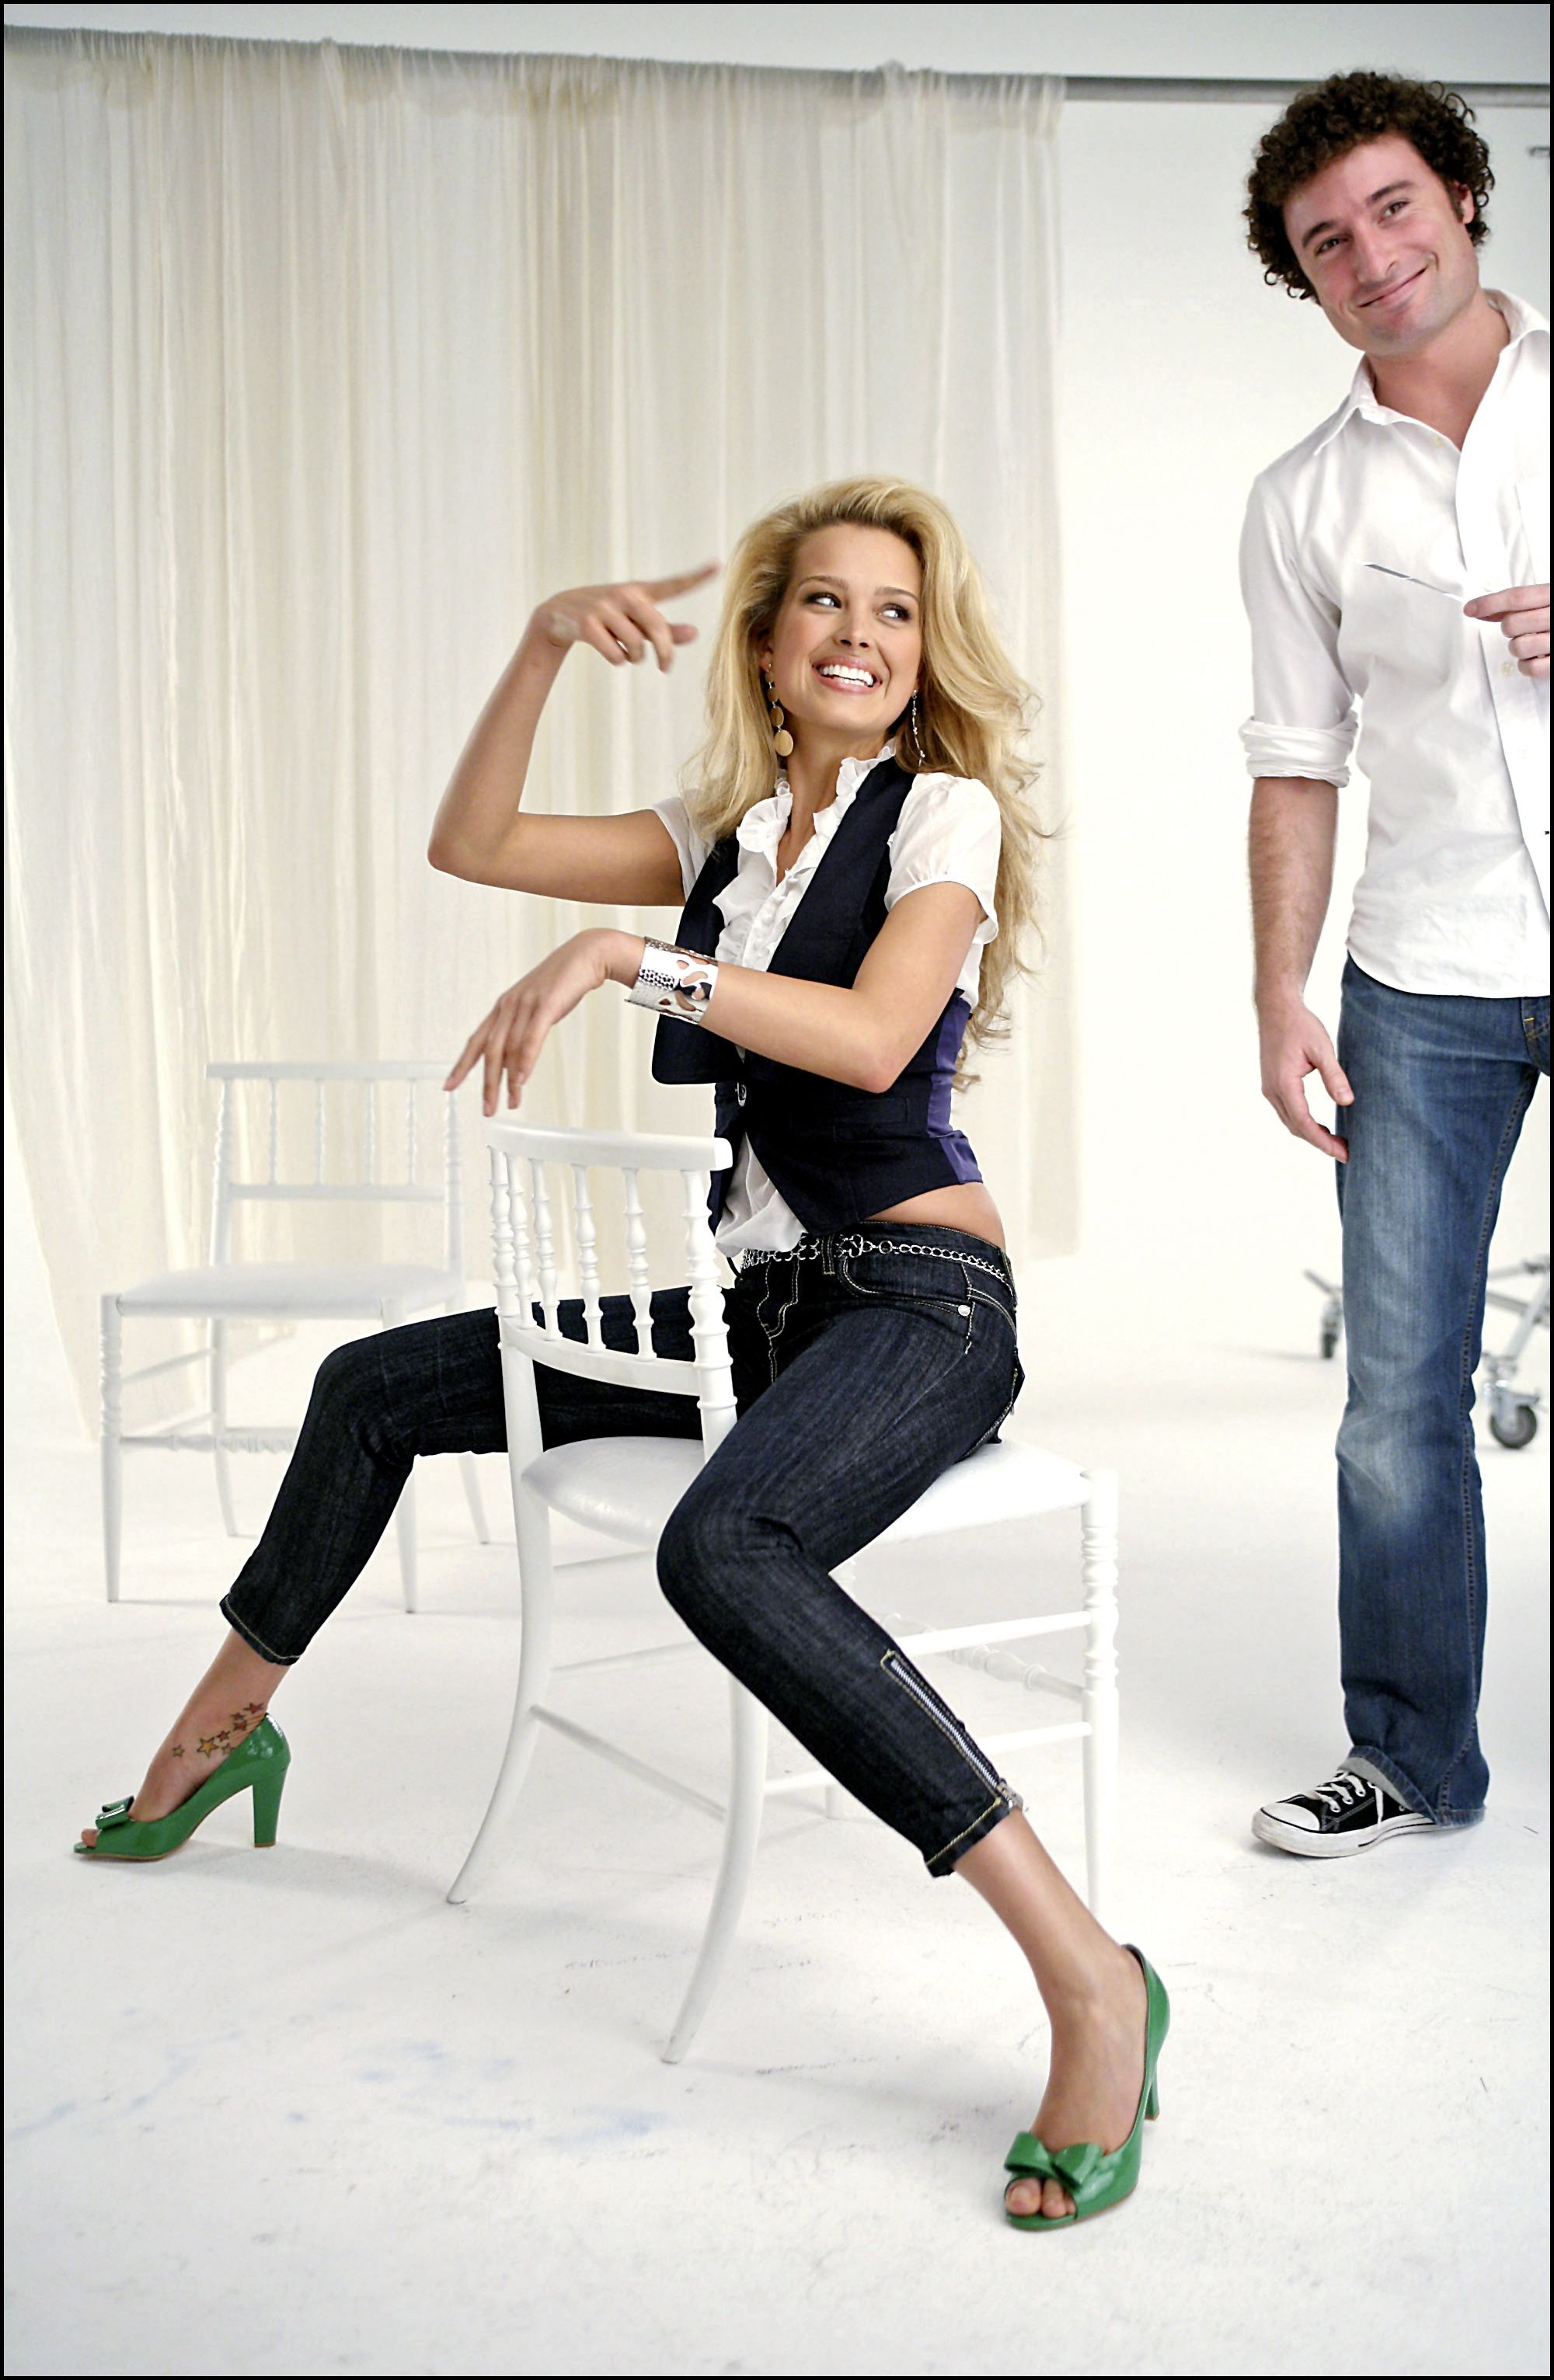 54489_Celebutopia-Petra_Nemcova_behind_the_scenes_on_her_new_photo_shoot_for_the_clothing_company_Rampage-08_122_919lo.jpeg